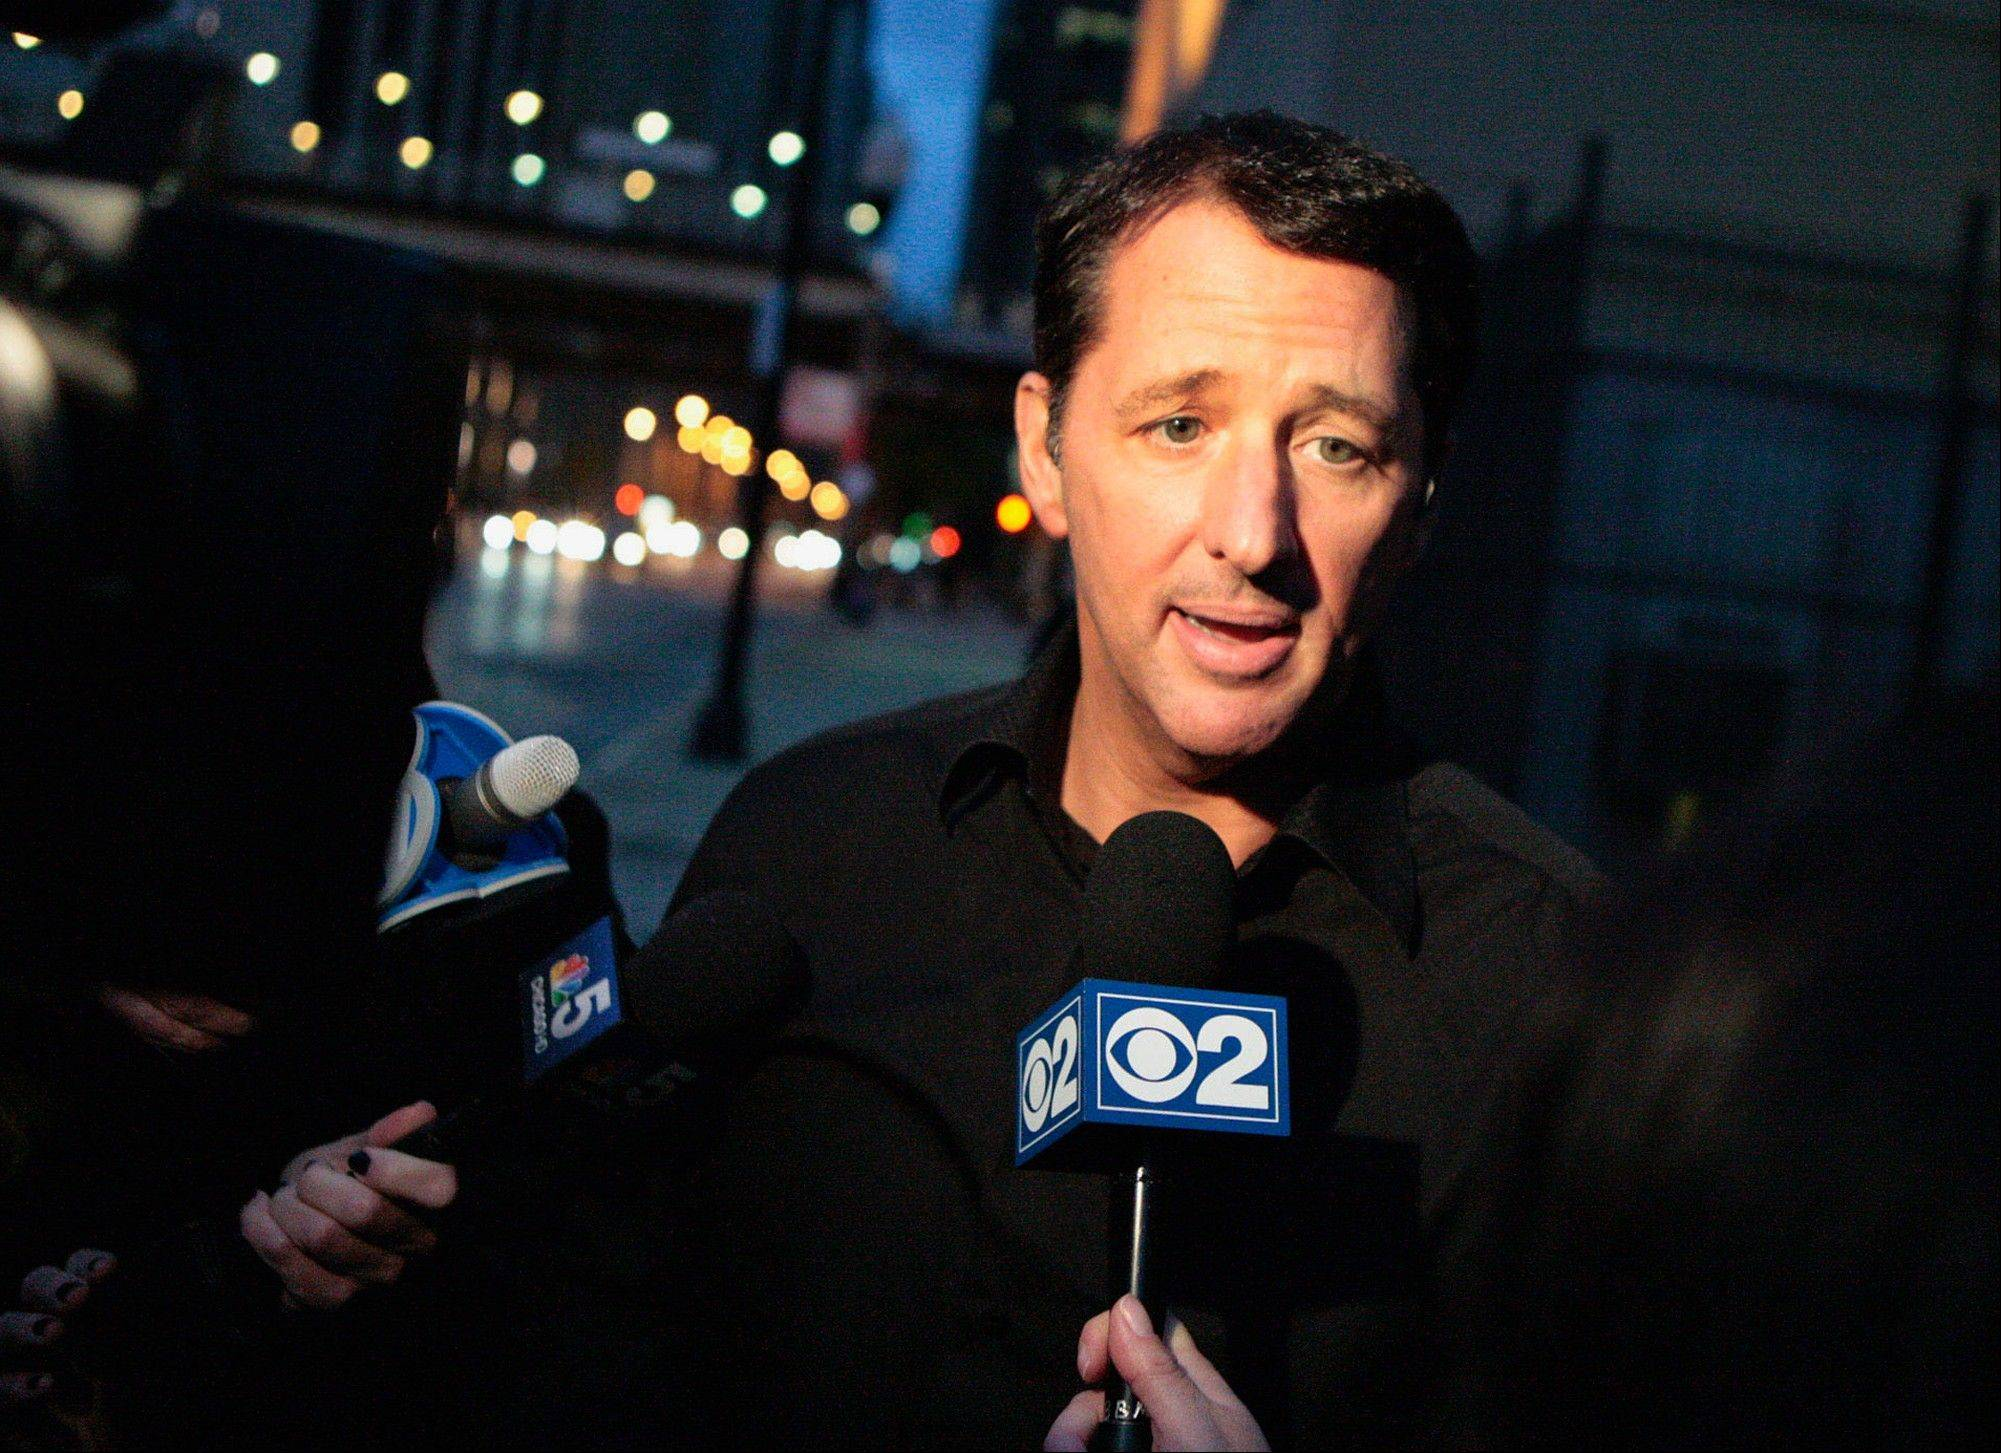 A jury found television infomercial pitchman Kevin Trudeau guilty of criminal contempt Tuesday.